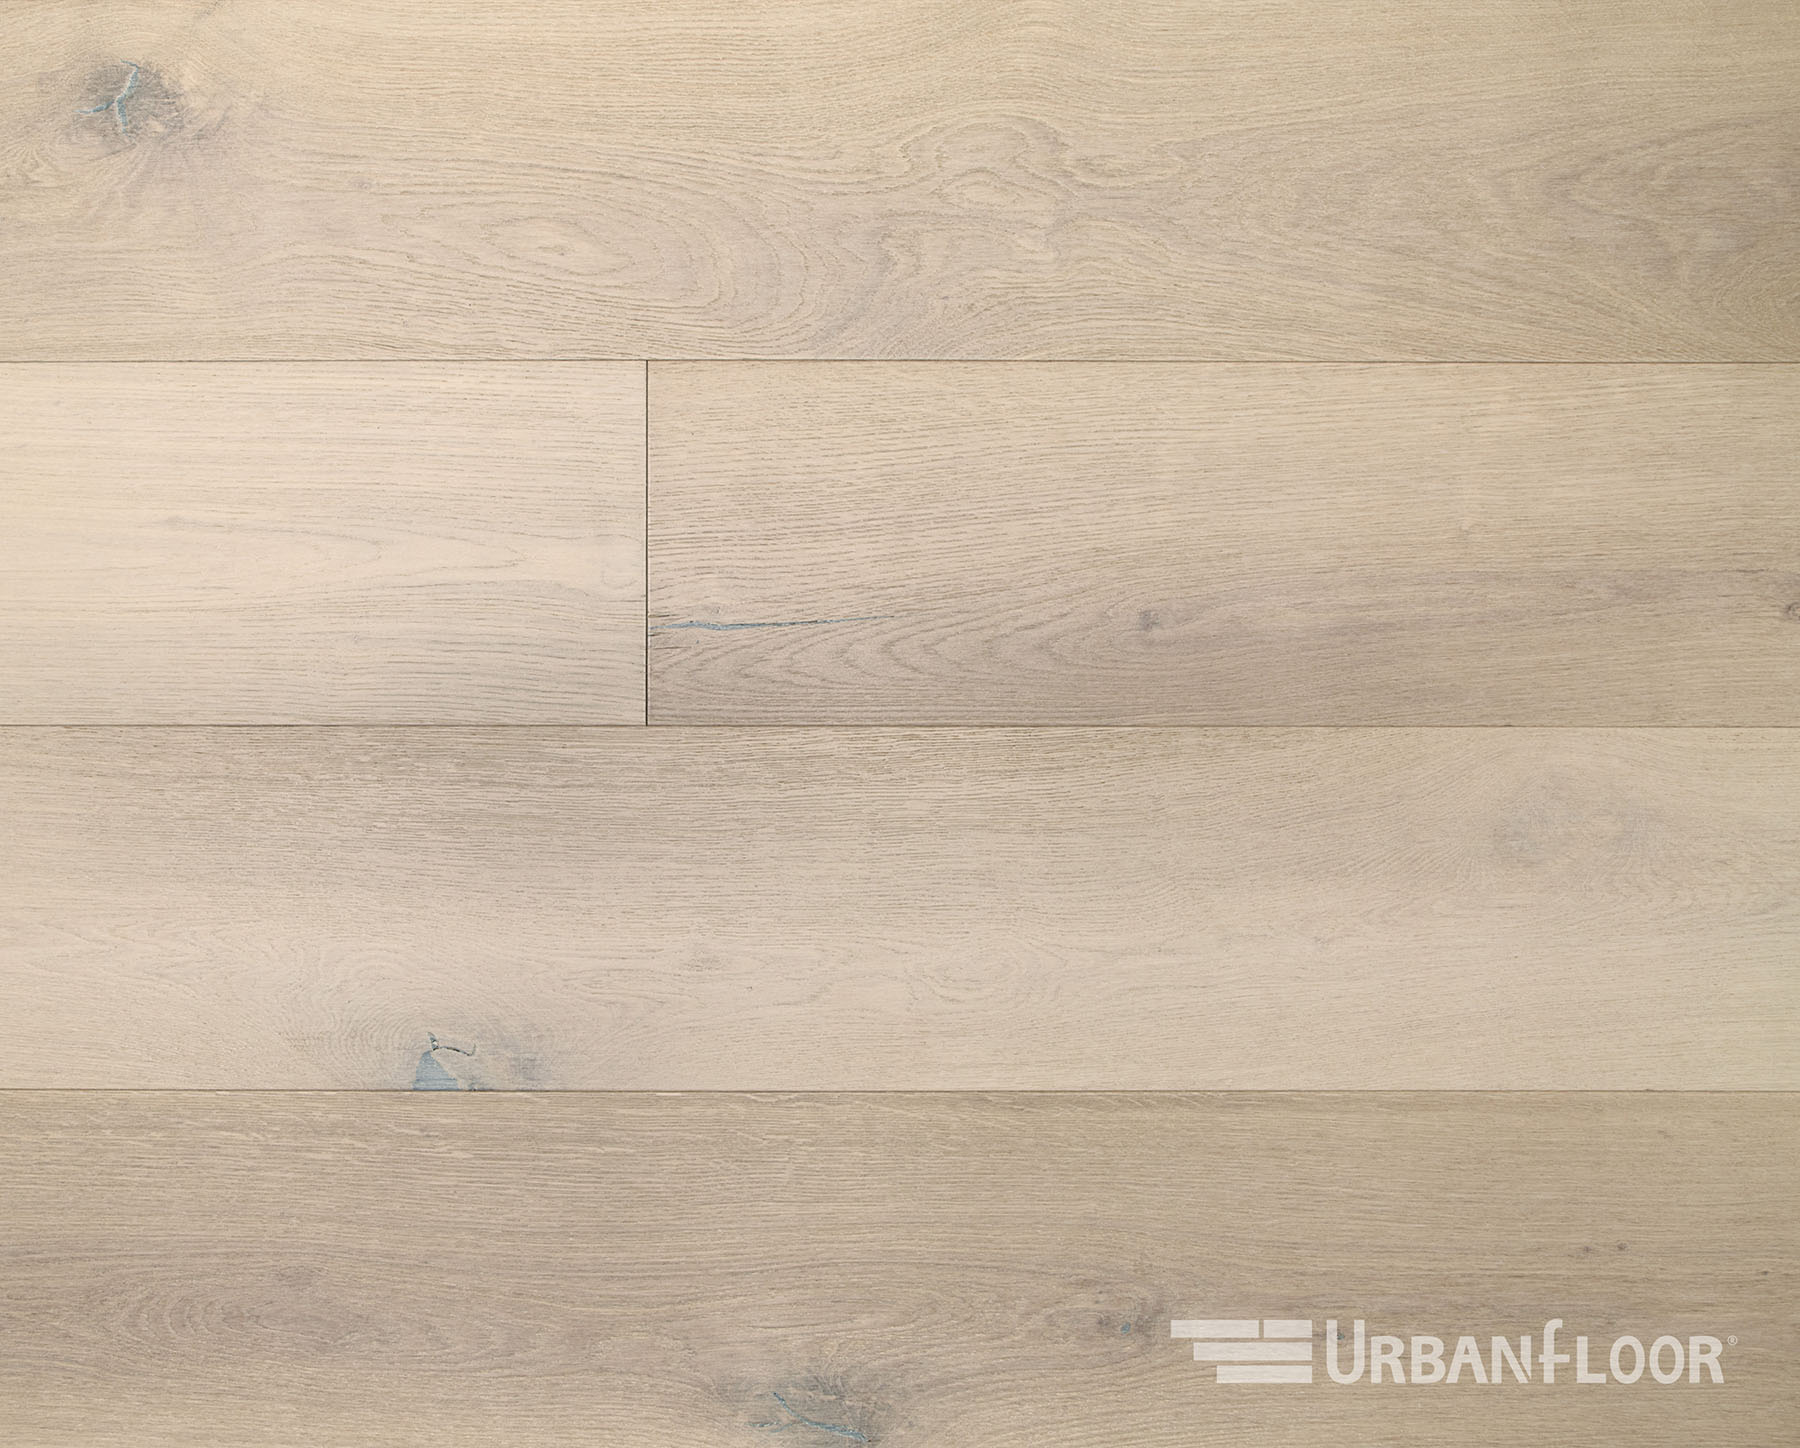 VC Romagna wood floors websize.jpg